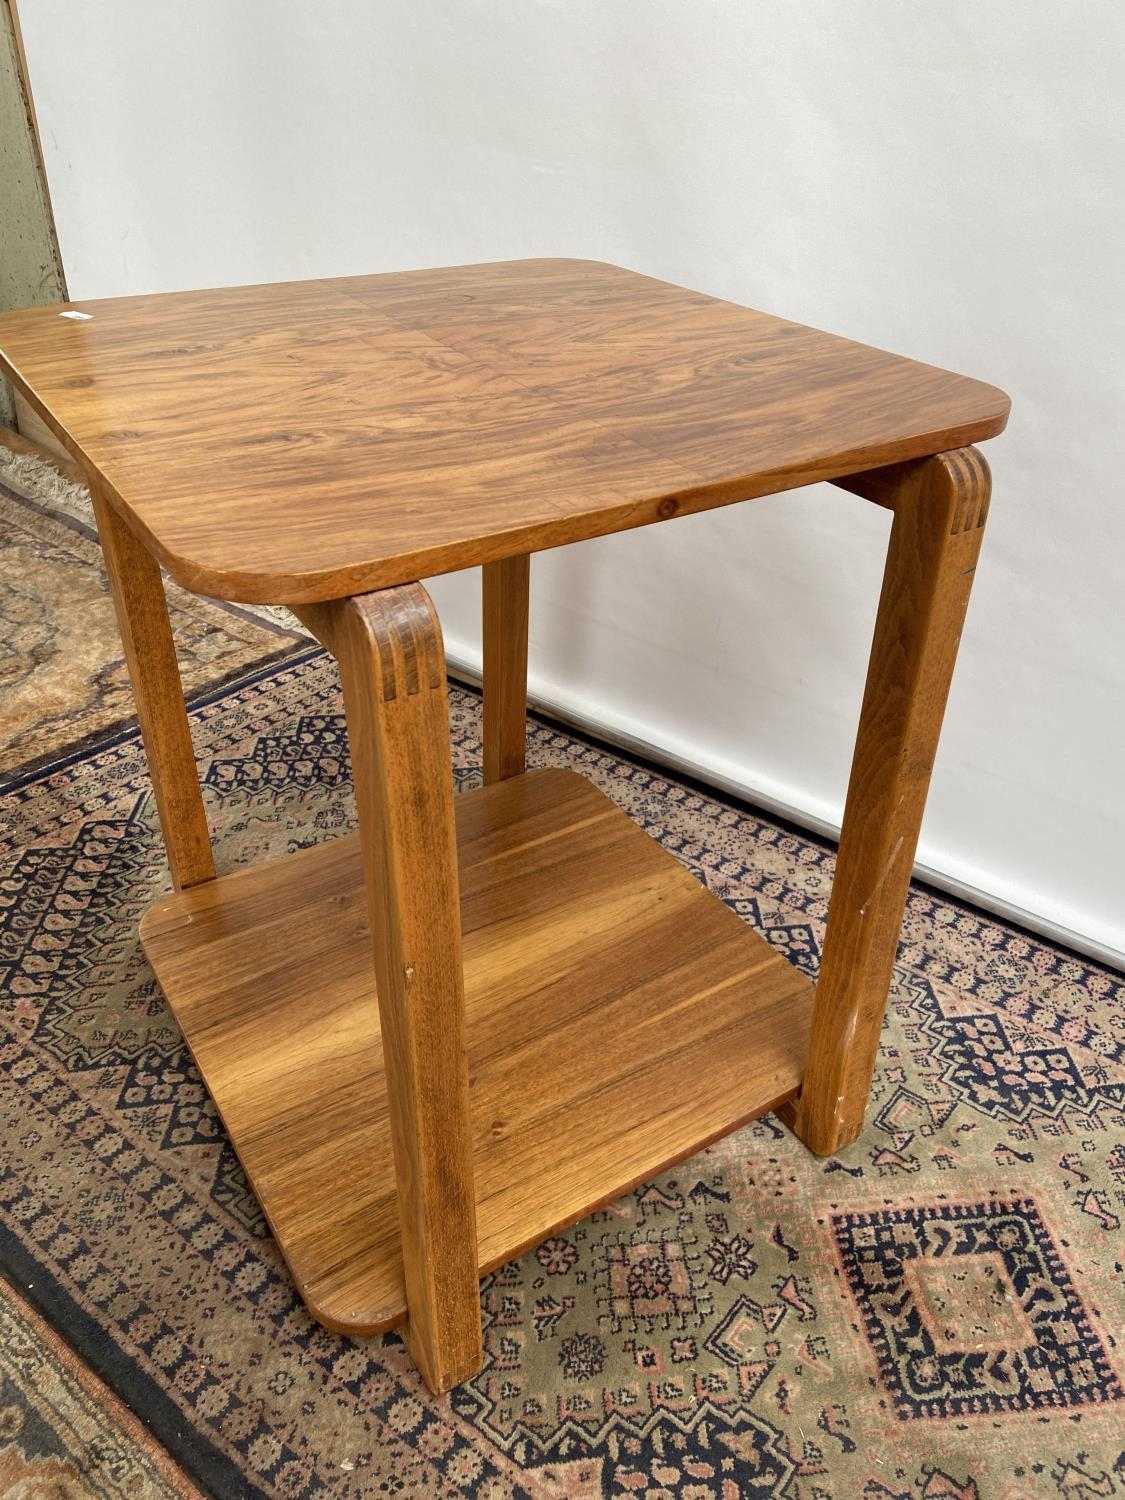 A stylish mid century two tier table [60x50x50cm] - Image 4 of 4